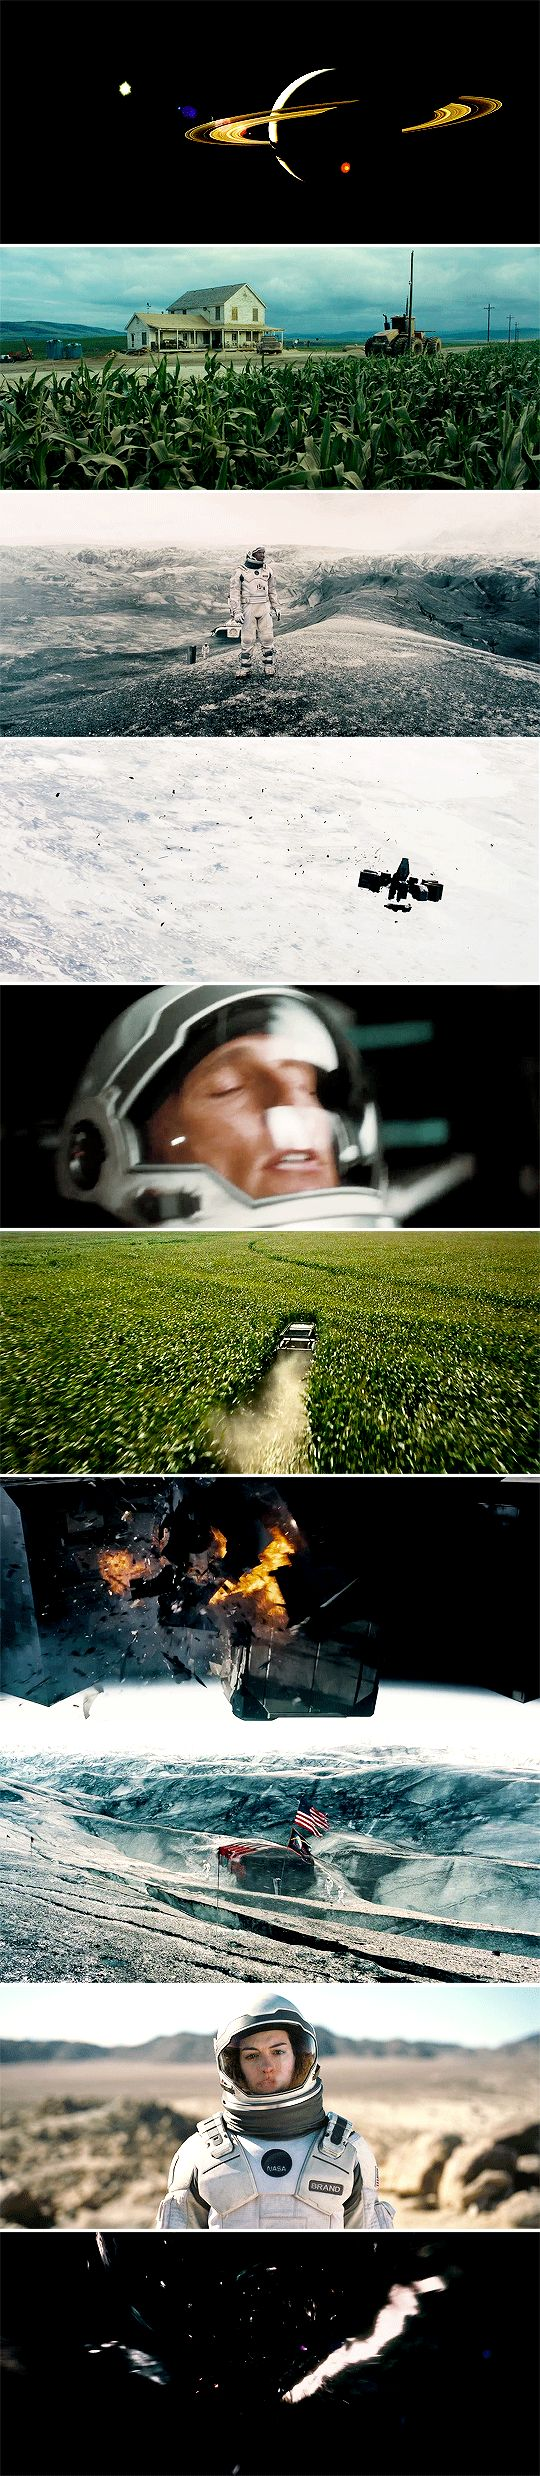 Interstellar (2014) - Cinematography by Hoyte van Hoytema | Directed by Christopher Nolan